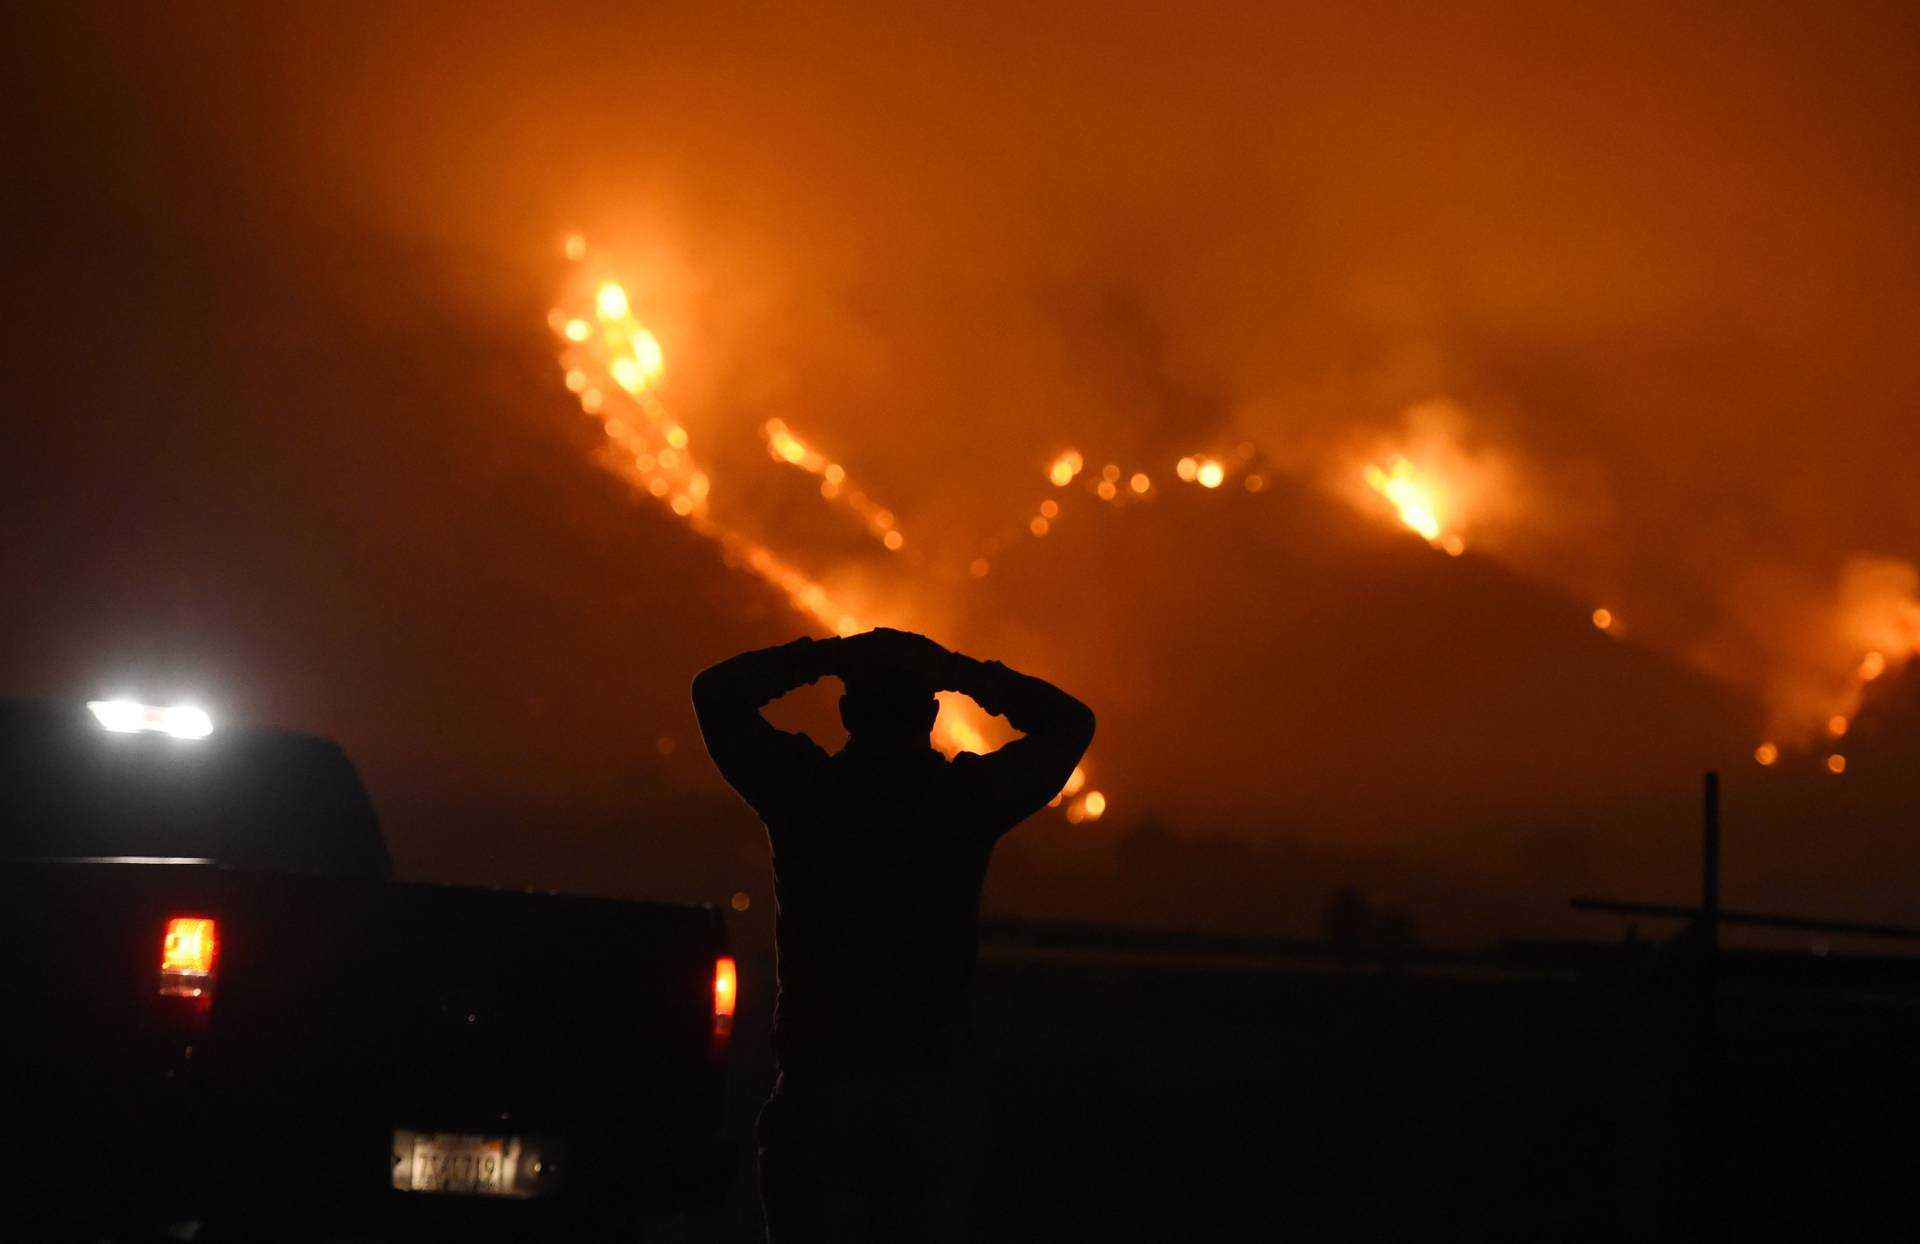 A man watches the Thomas Fire in the hills above Carpinteria on Dec. 11, 2017. The fire, burning in California's Ventura and Santa Barbara counties, has consumed more than 230,000 acres over the past week, making it the fifth-largest fire in state history. Robyn Beck/AFP/Getty Images